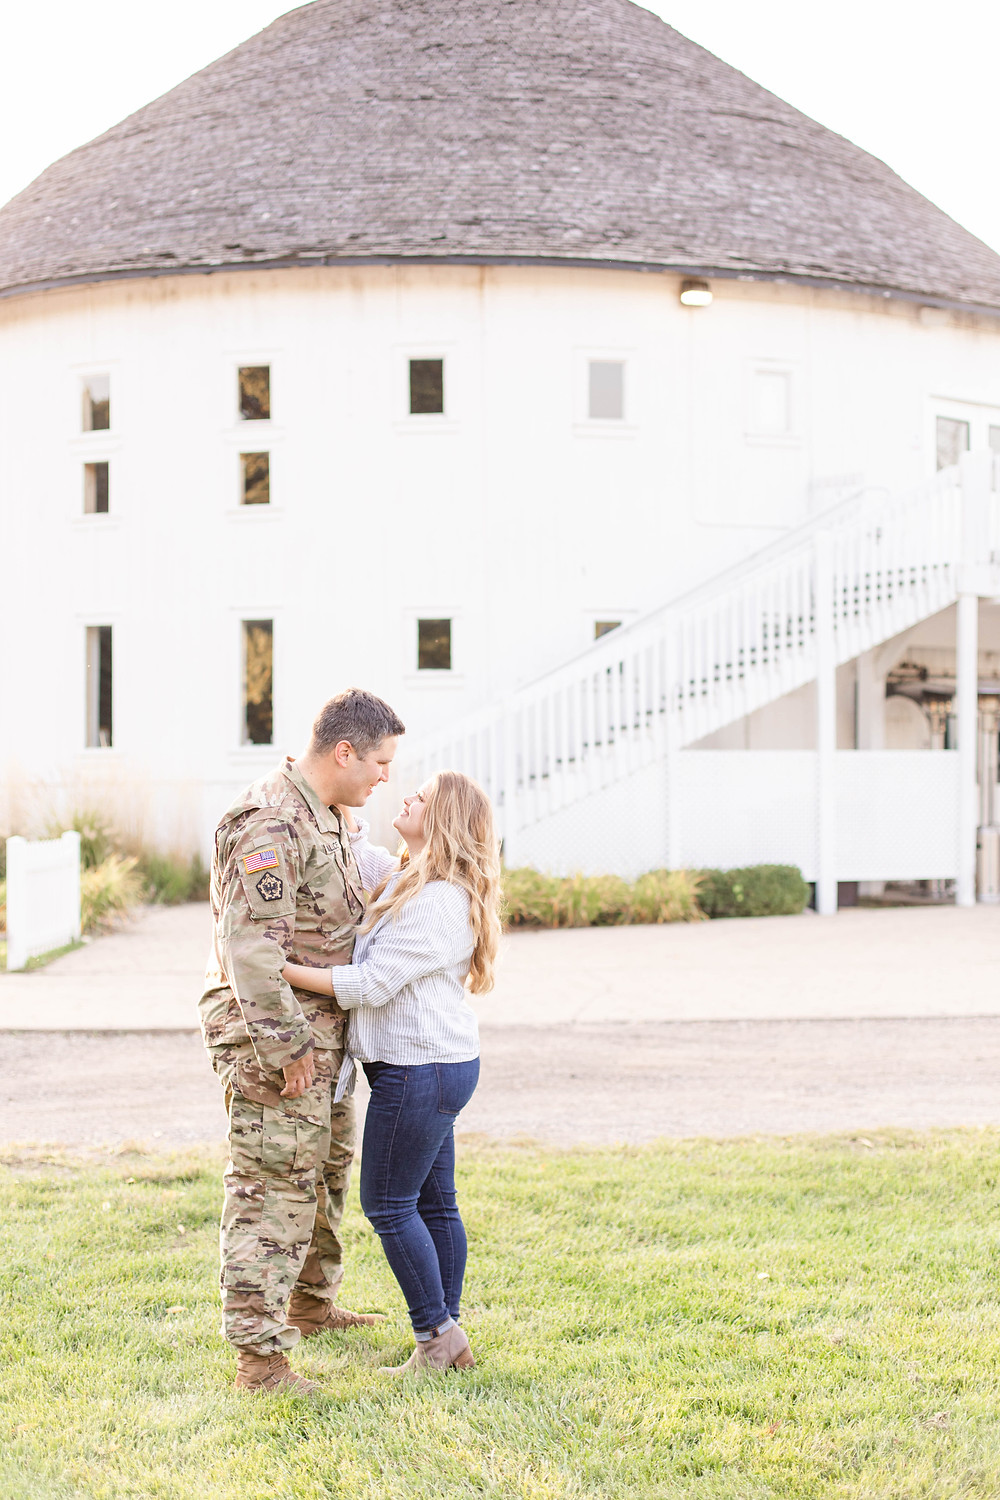 Engagement photos Round Barn Winery Baroda Michigan army uniform cute couple